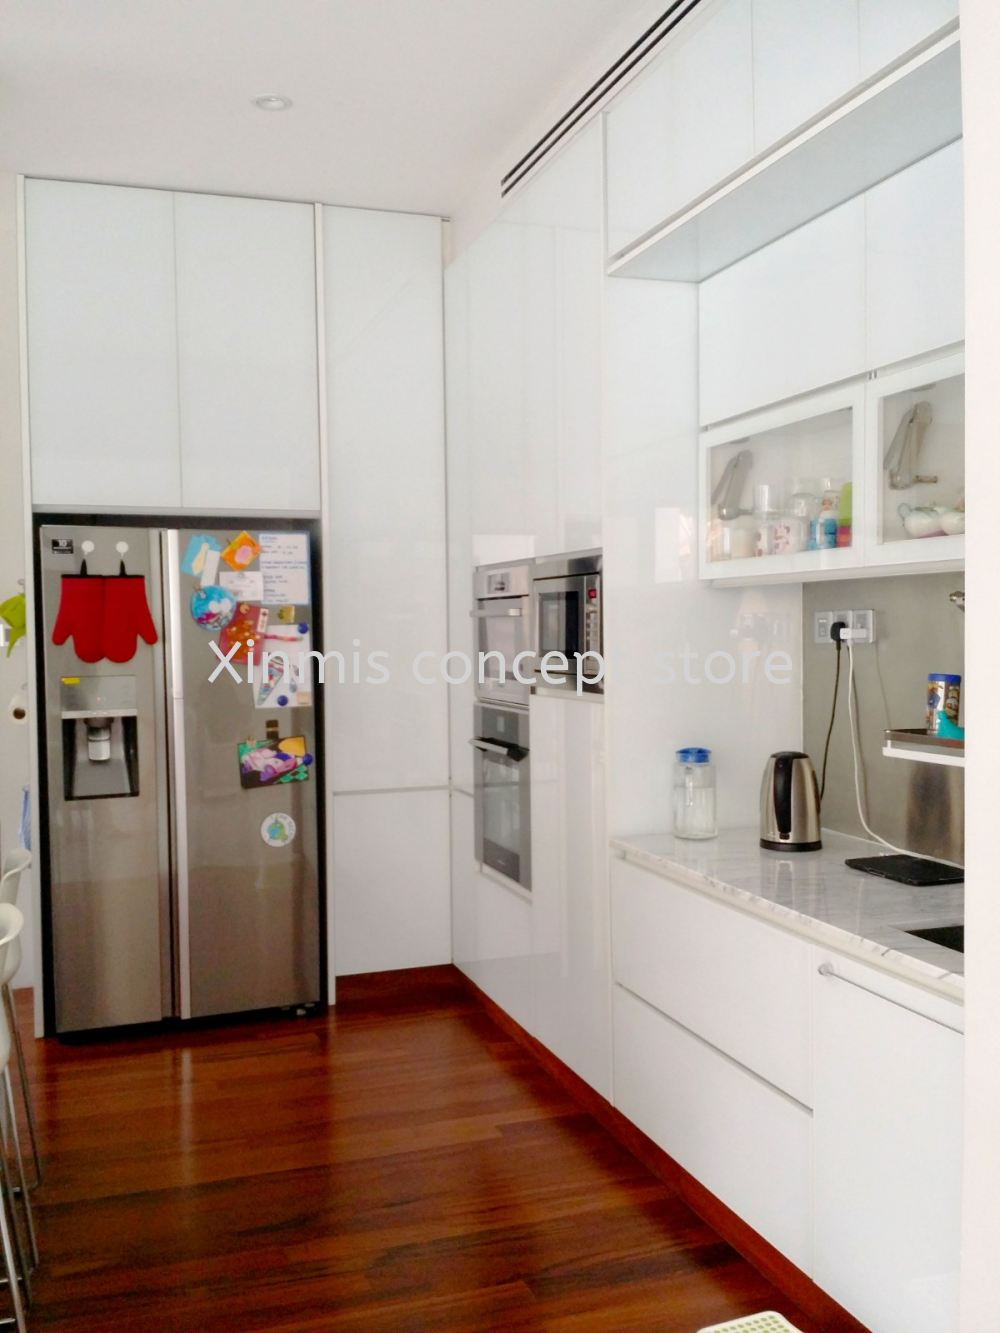 Aluminium kitchen cabinet - Saujana Golf & Country Club White ...